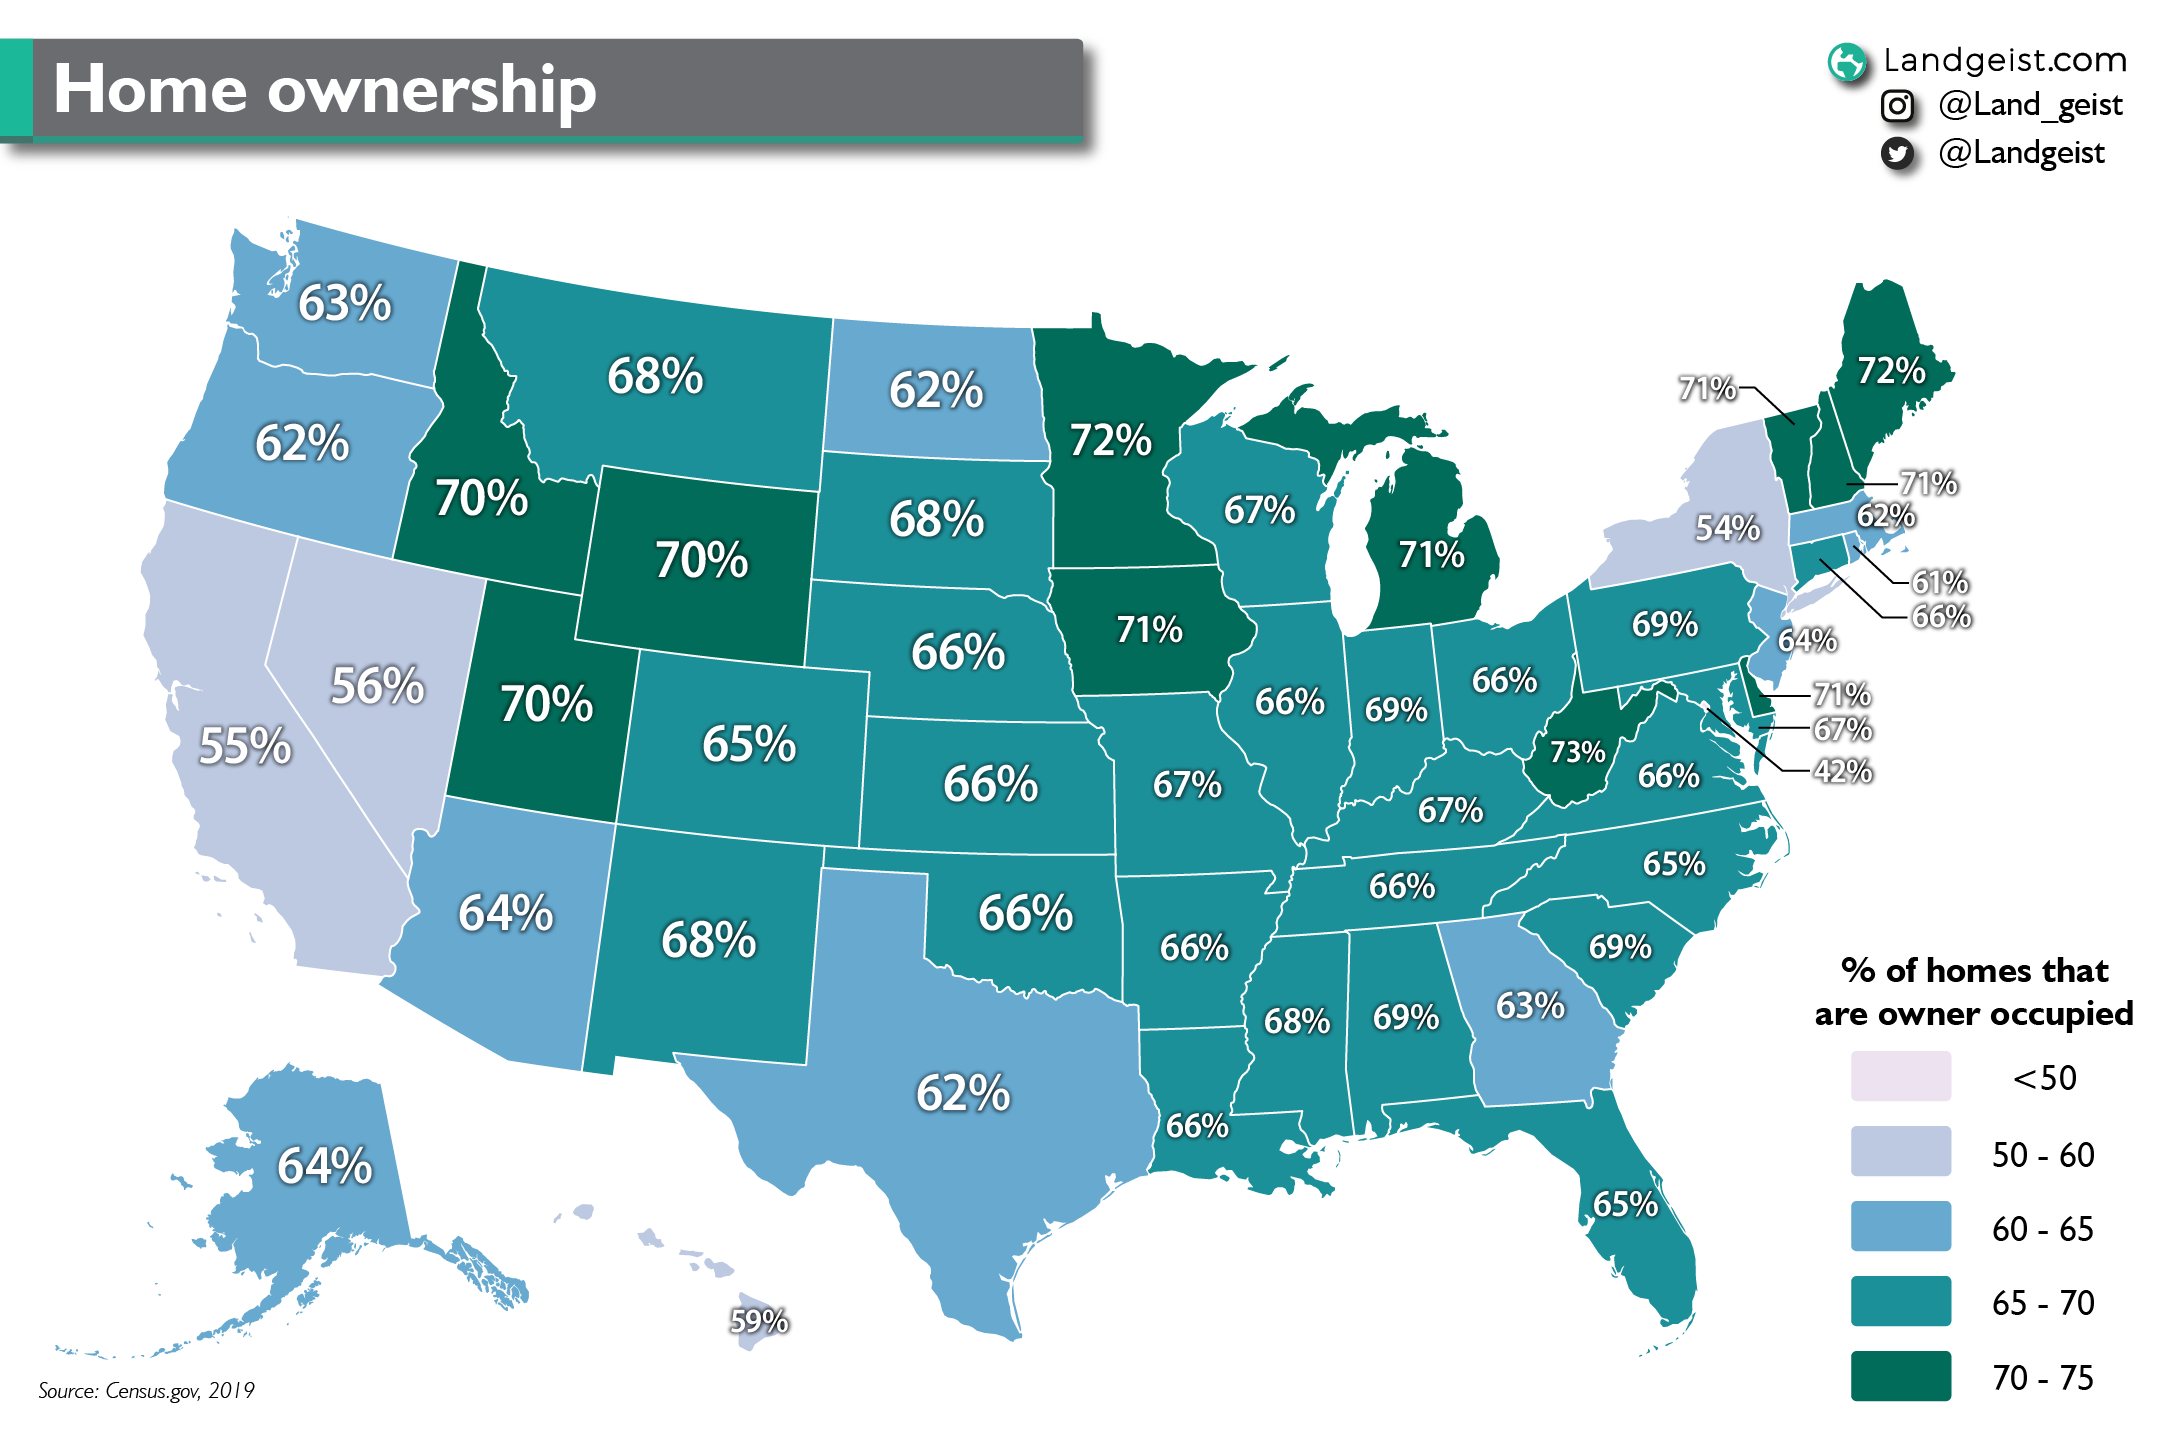 Map showing the rate of home ownership in the United States.